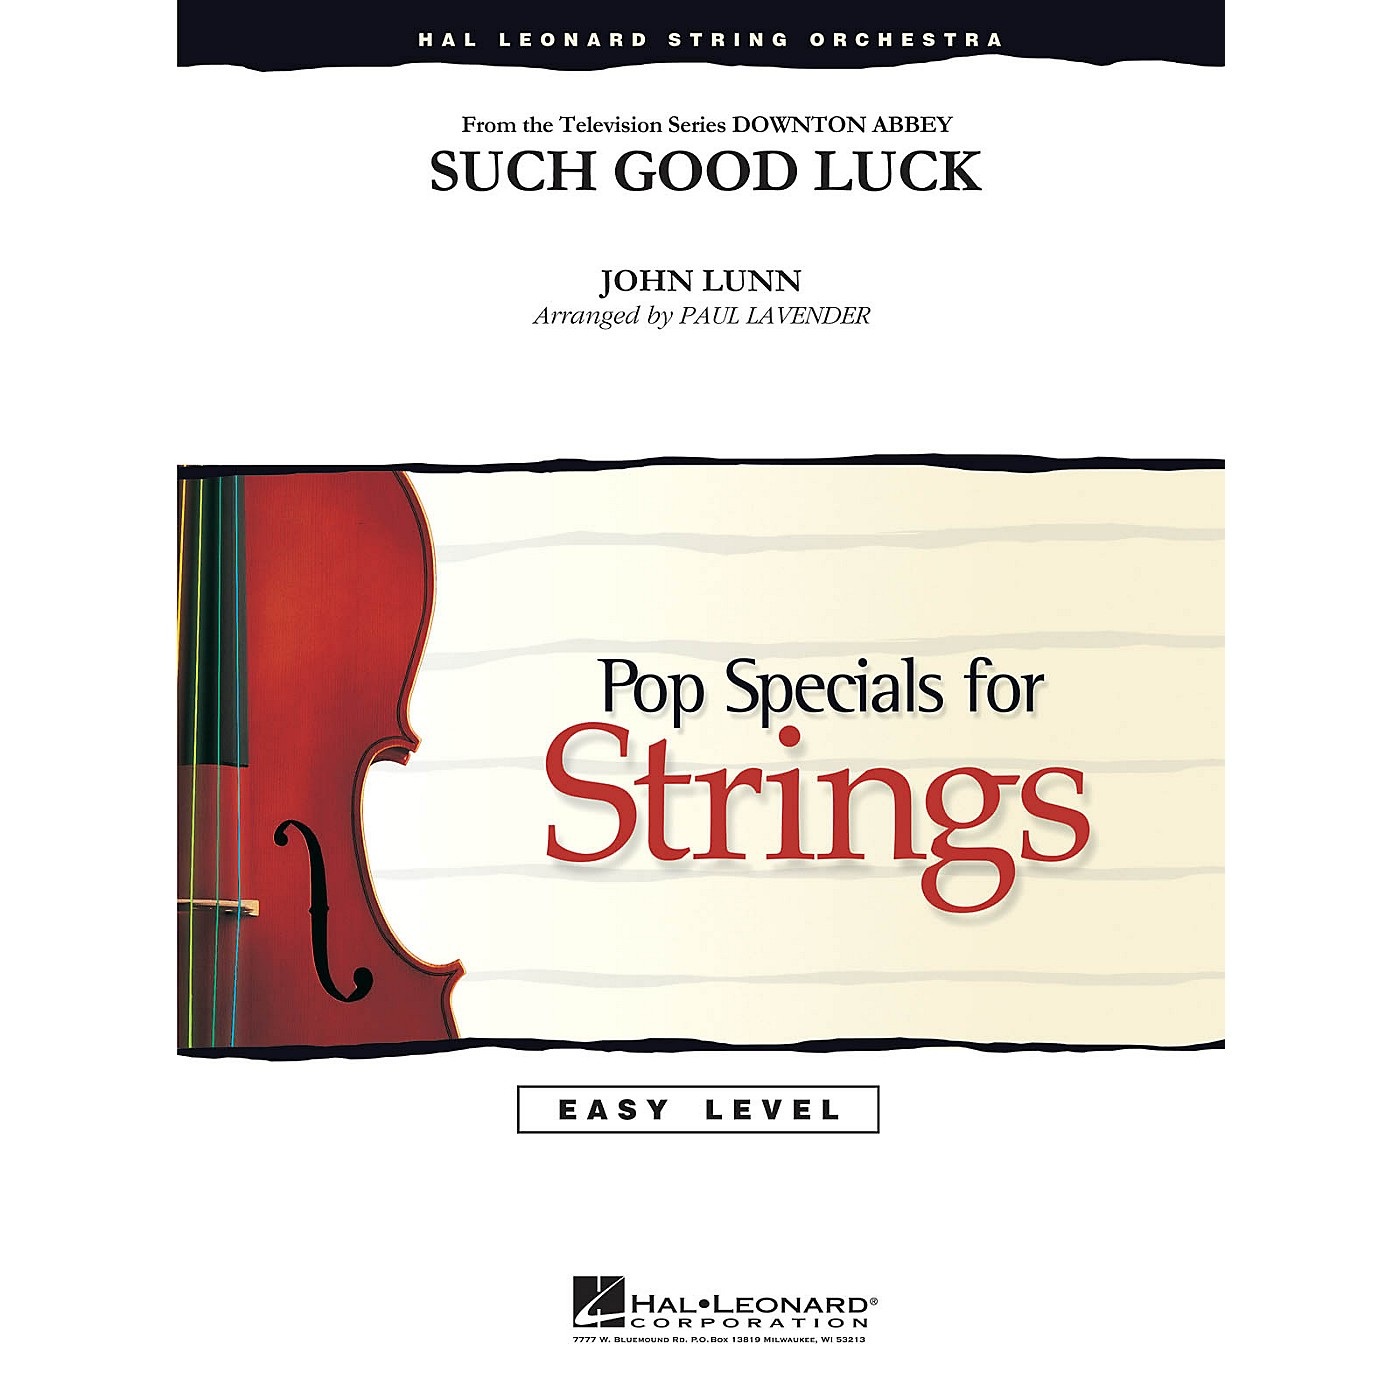 Hal Leonard Such Good Luck (from Downton Abbey) Easy Pop Specials For Strings Series Softcover by Paul Lavender thumbnail